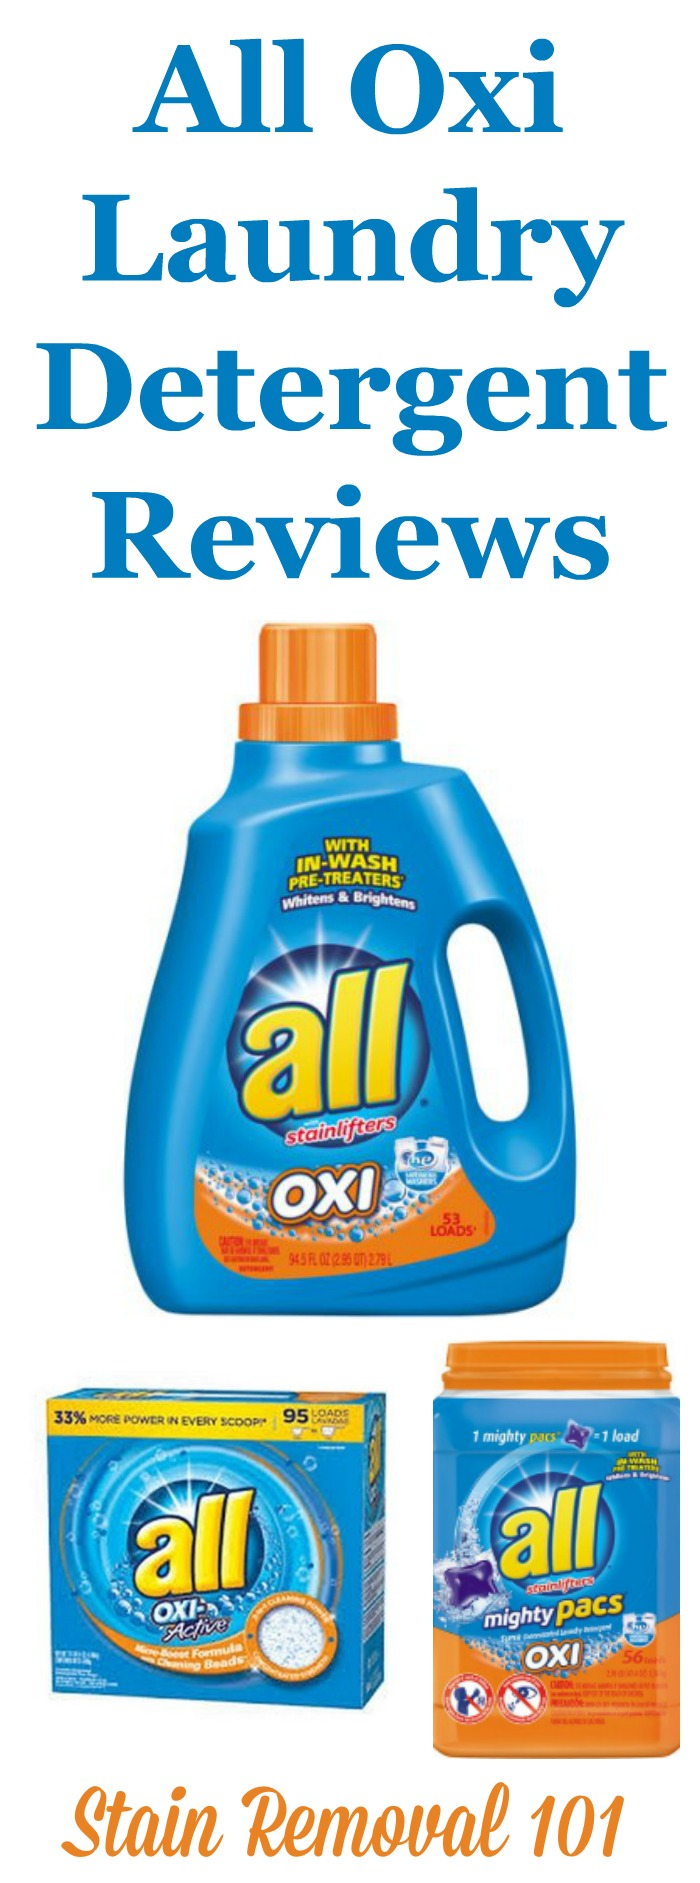 Reviews of All-Oxi laundry detergent, with multiple reports of allergic reactions to the oxygen bleach product within this product. {on Stain Removal 101}